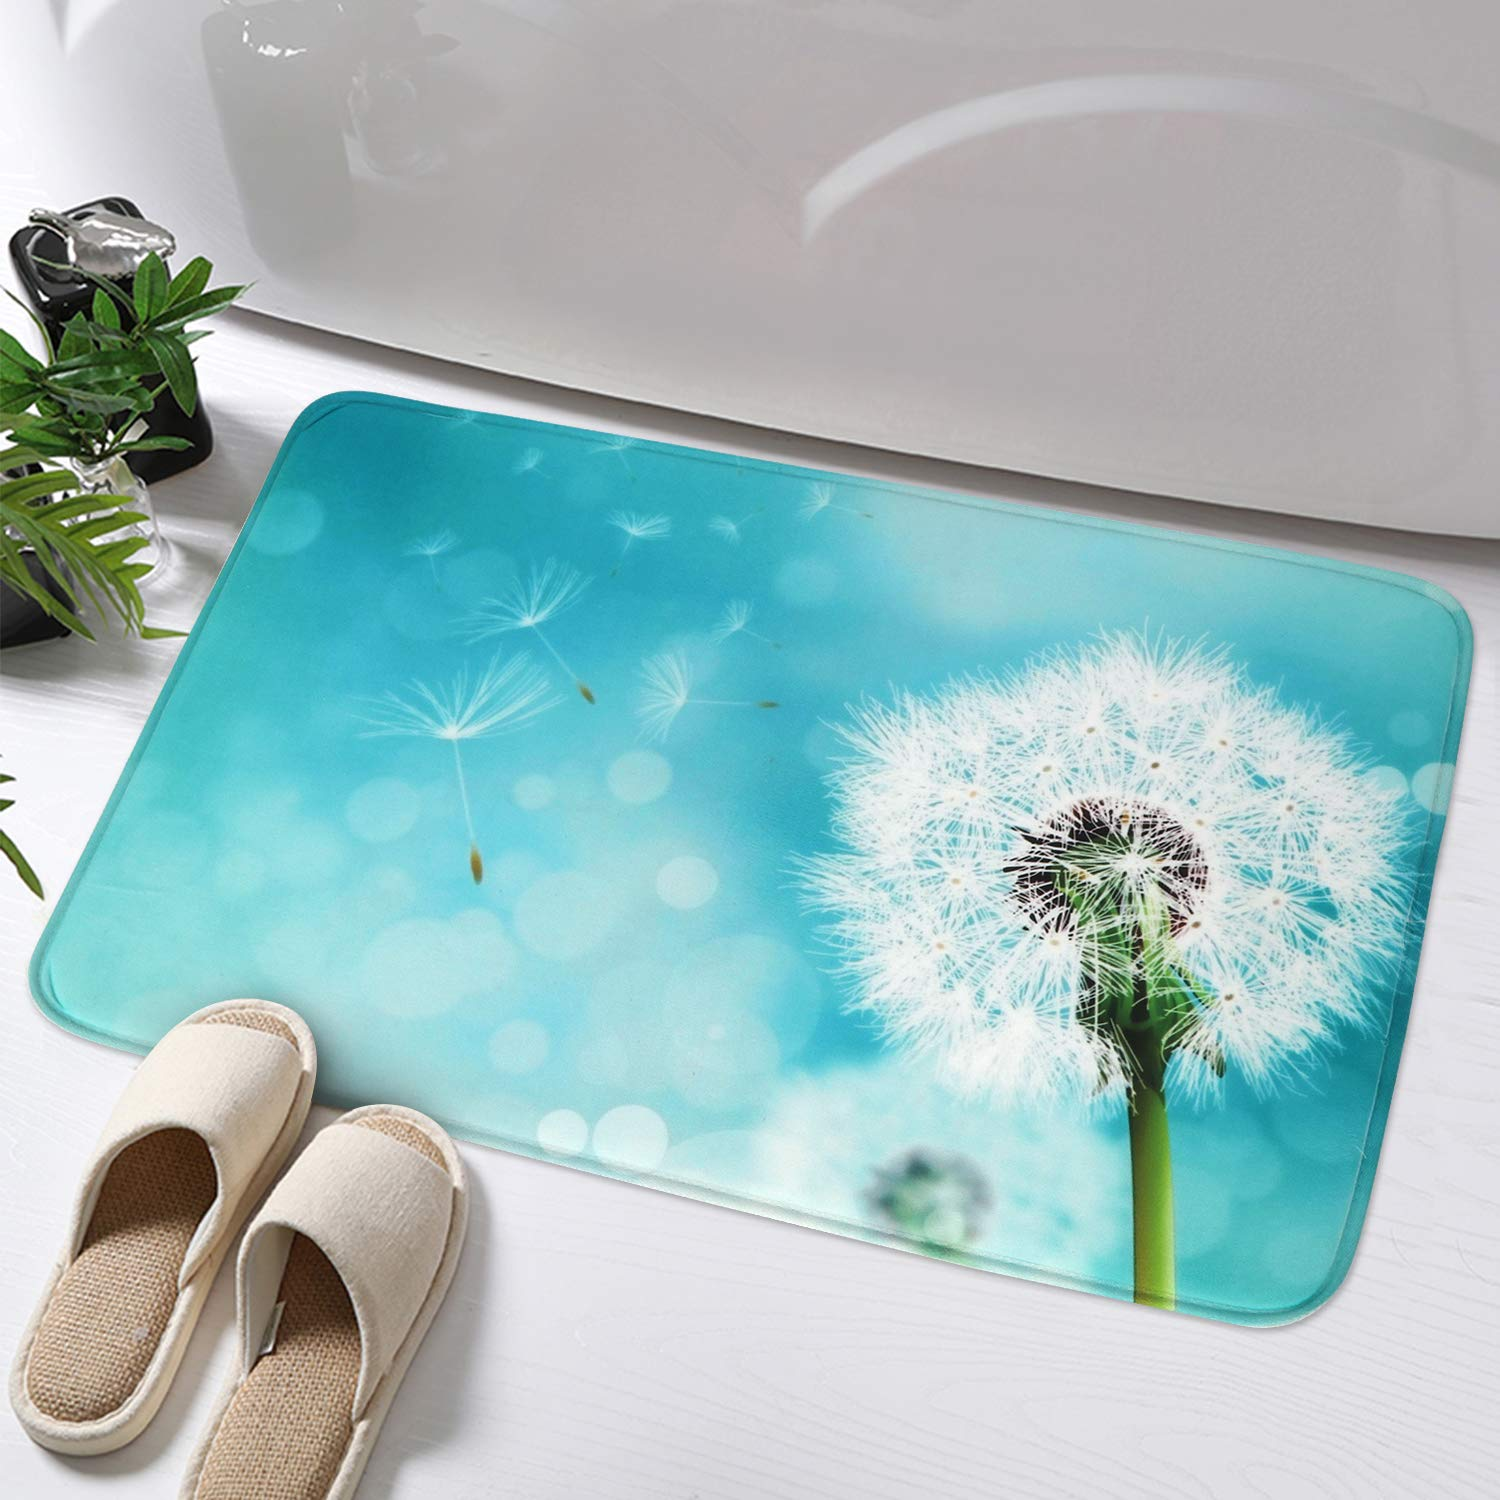 Haocoo Dandelion Kids Bathroom Rugs 16x24 Inch Non Slip Memory Foam Bath Mat Soft Velvet Bath Rug Machine Washable Floor Rug For Tub Shower